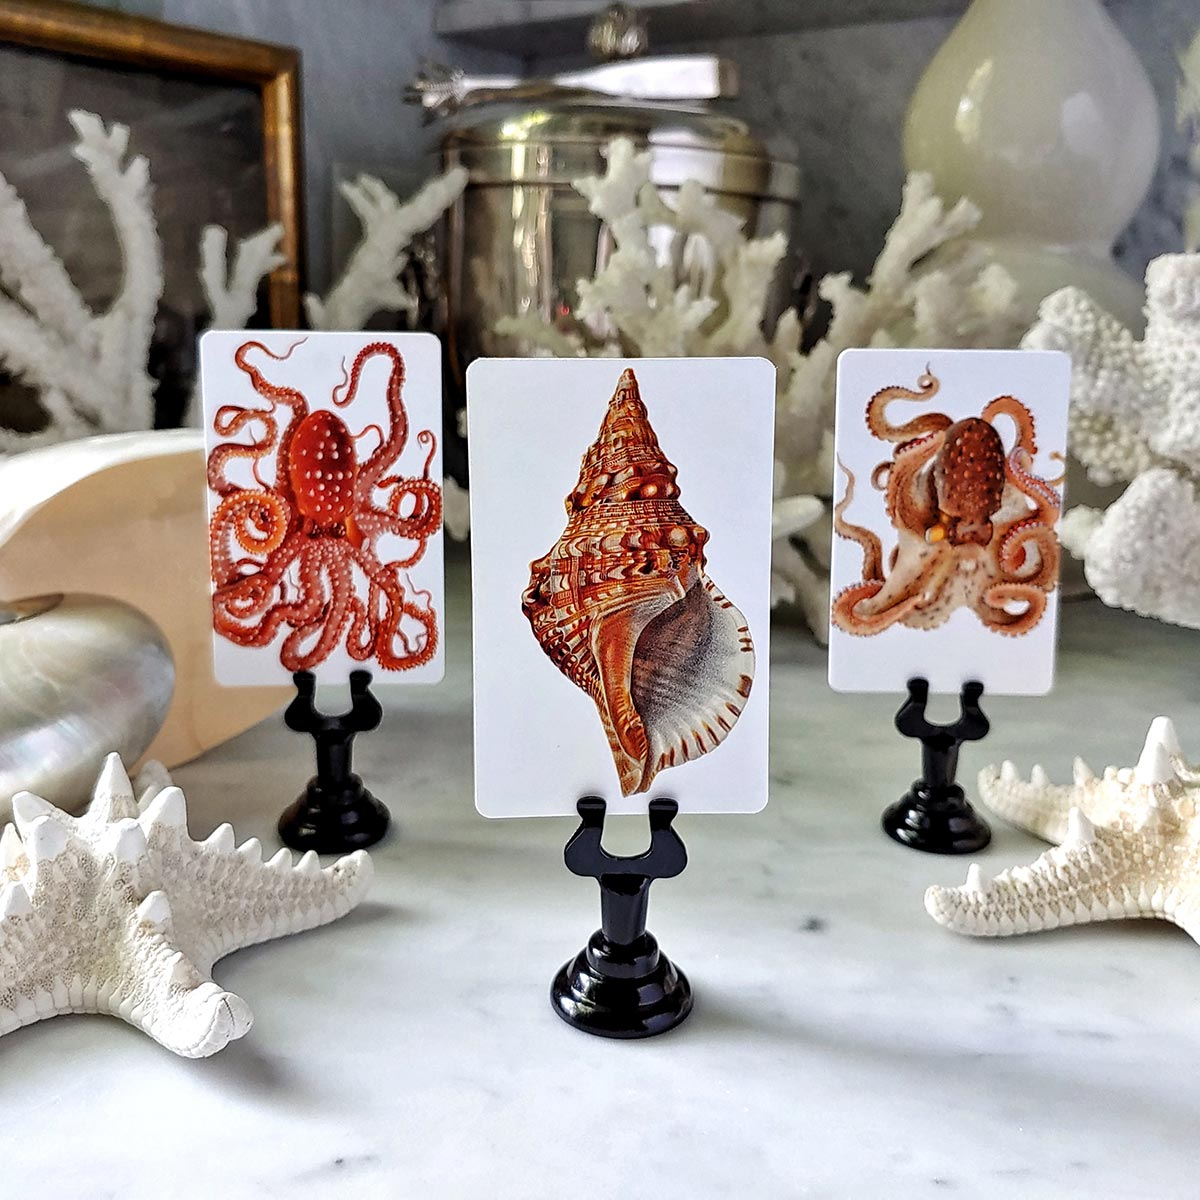 The Punctilious Mr. P's 'Octopodes & Conch' place cards